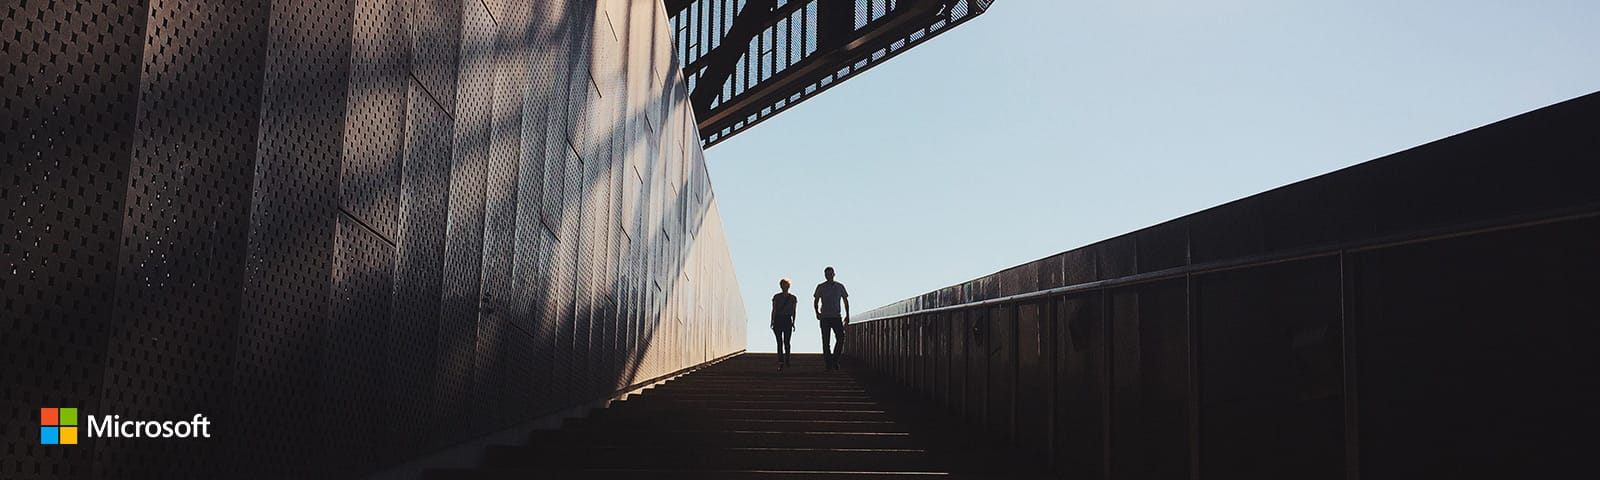 men walking on stairs